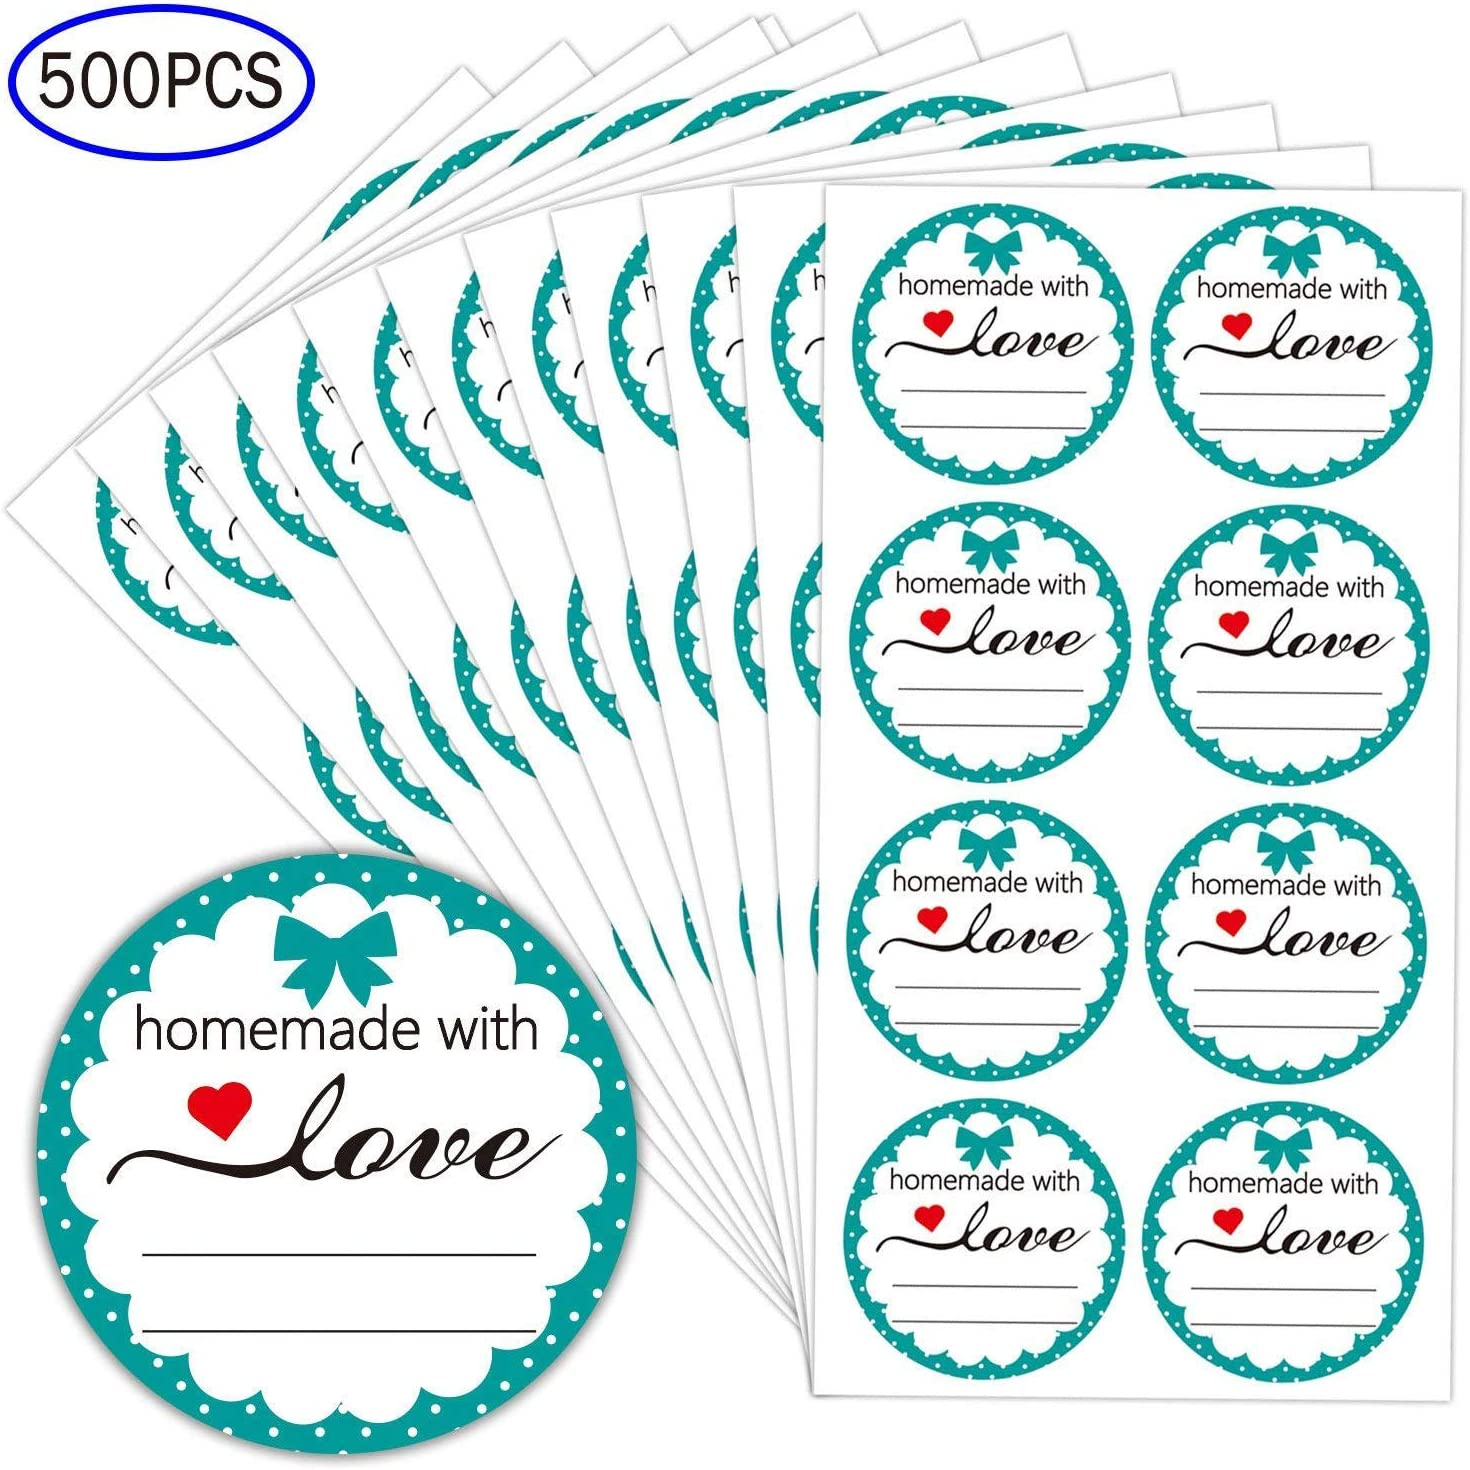 2 Inch Round Homemade with Love Sticker with Lines for Writing-500 Labels per Pack-Homemade with Love Canning Labels for Jars